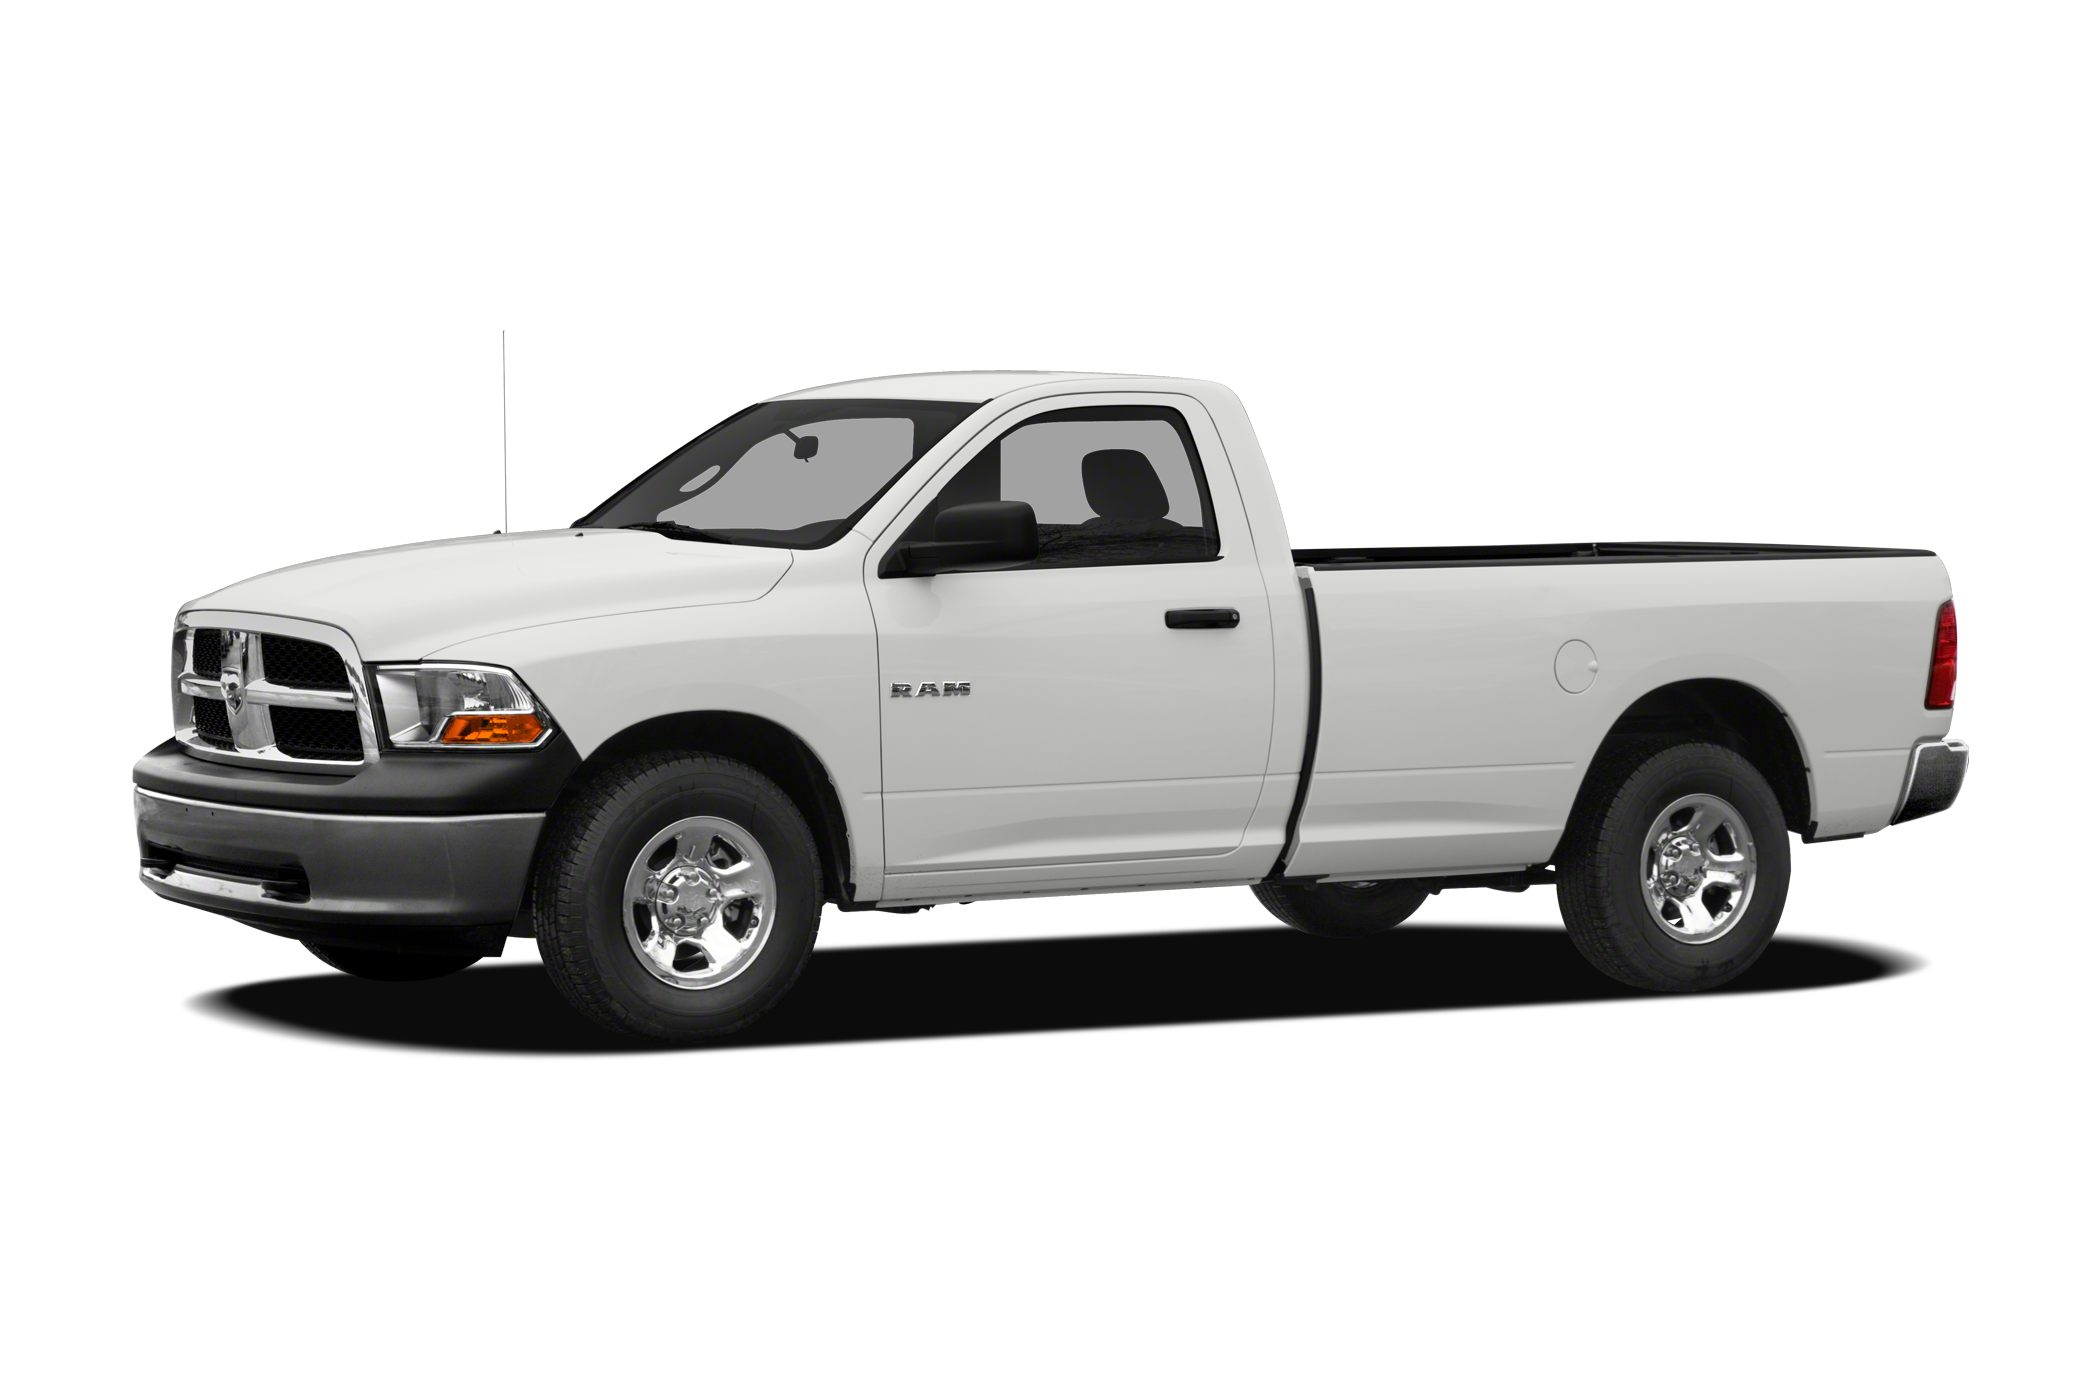 2012 RAM 1500 ST Crew Cab Pickup for sale in Mobile for $24,989 with 38,214 miles